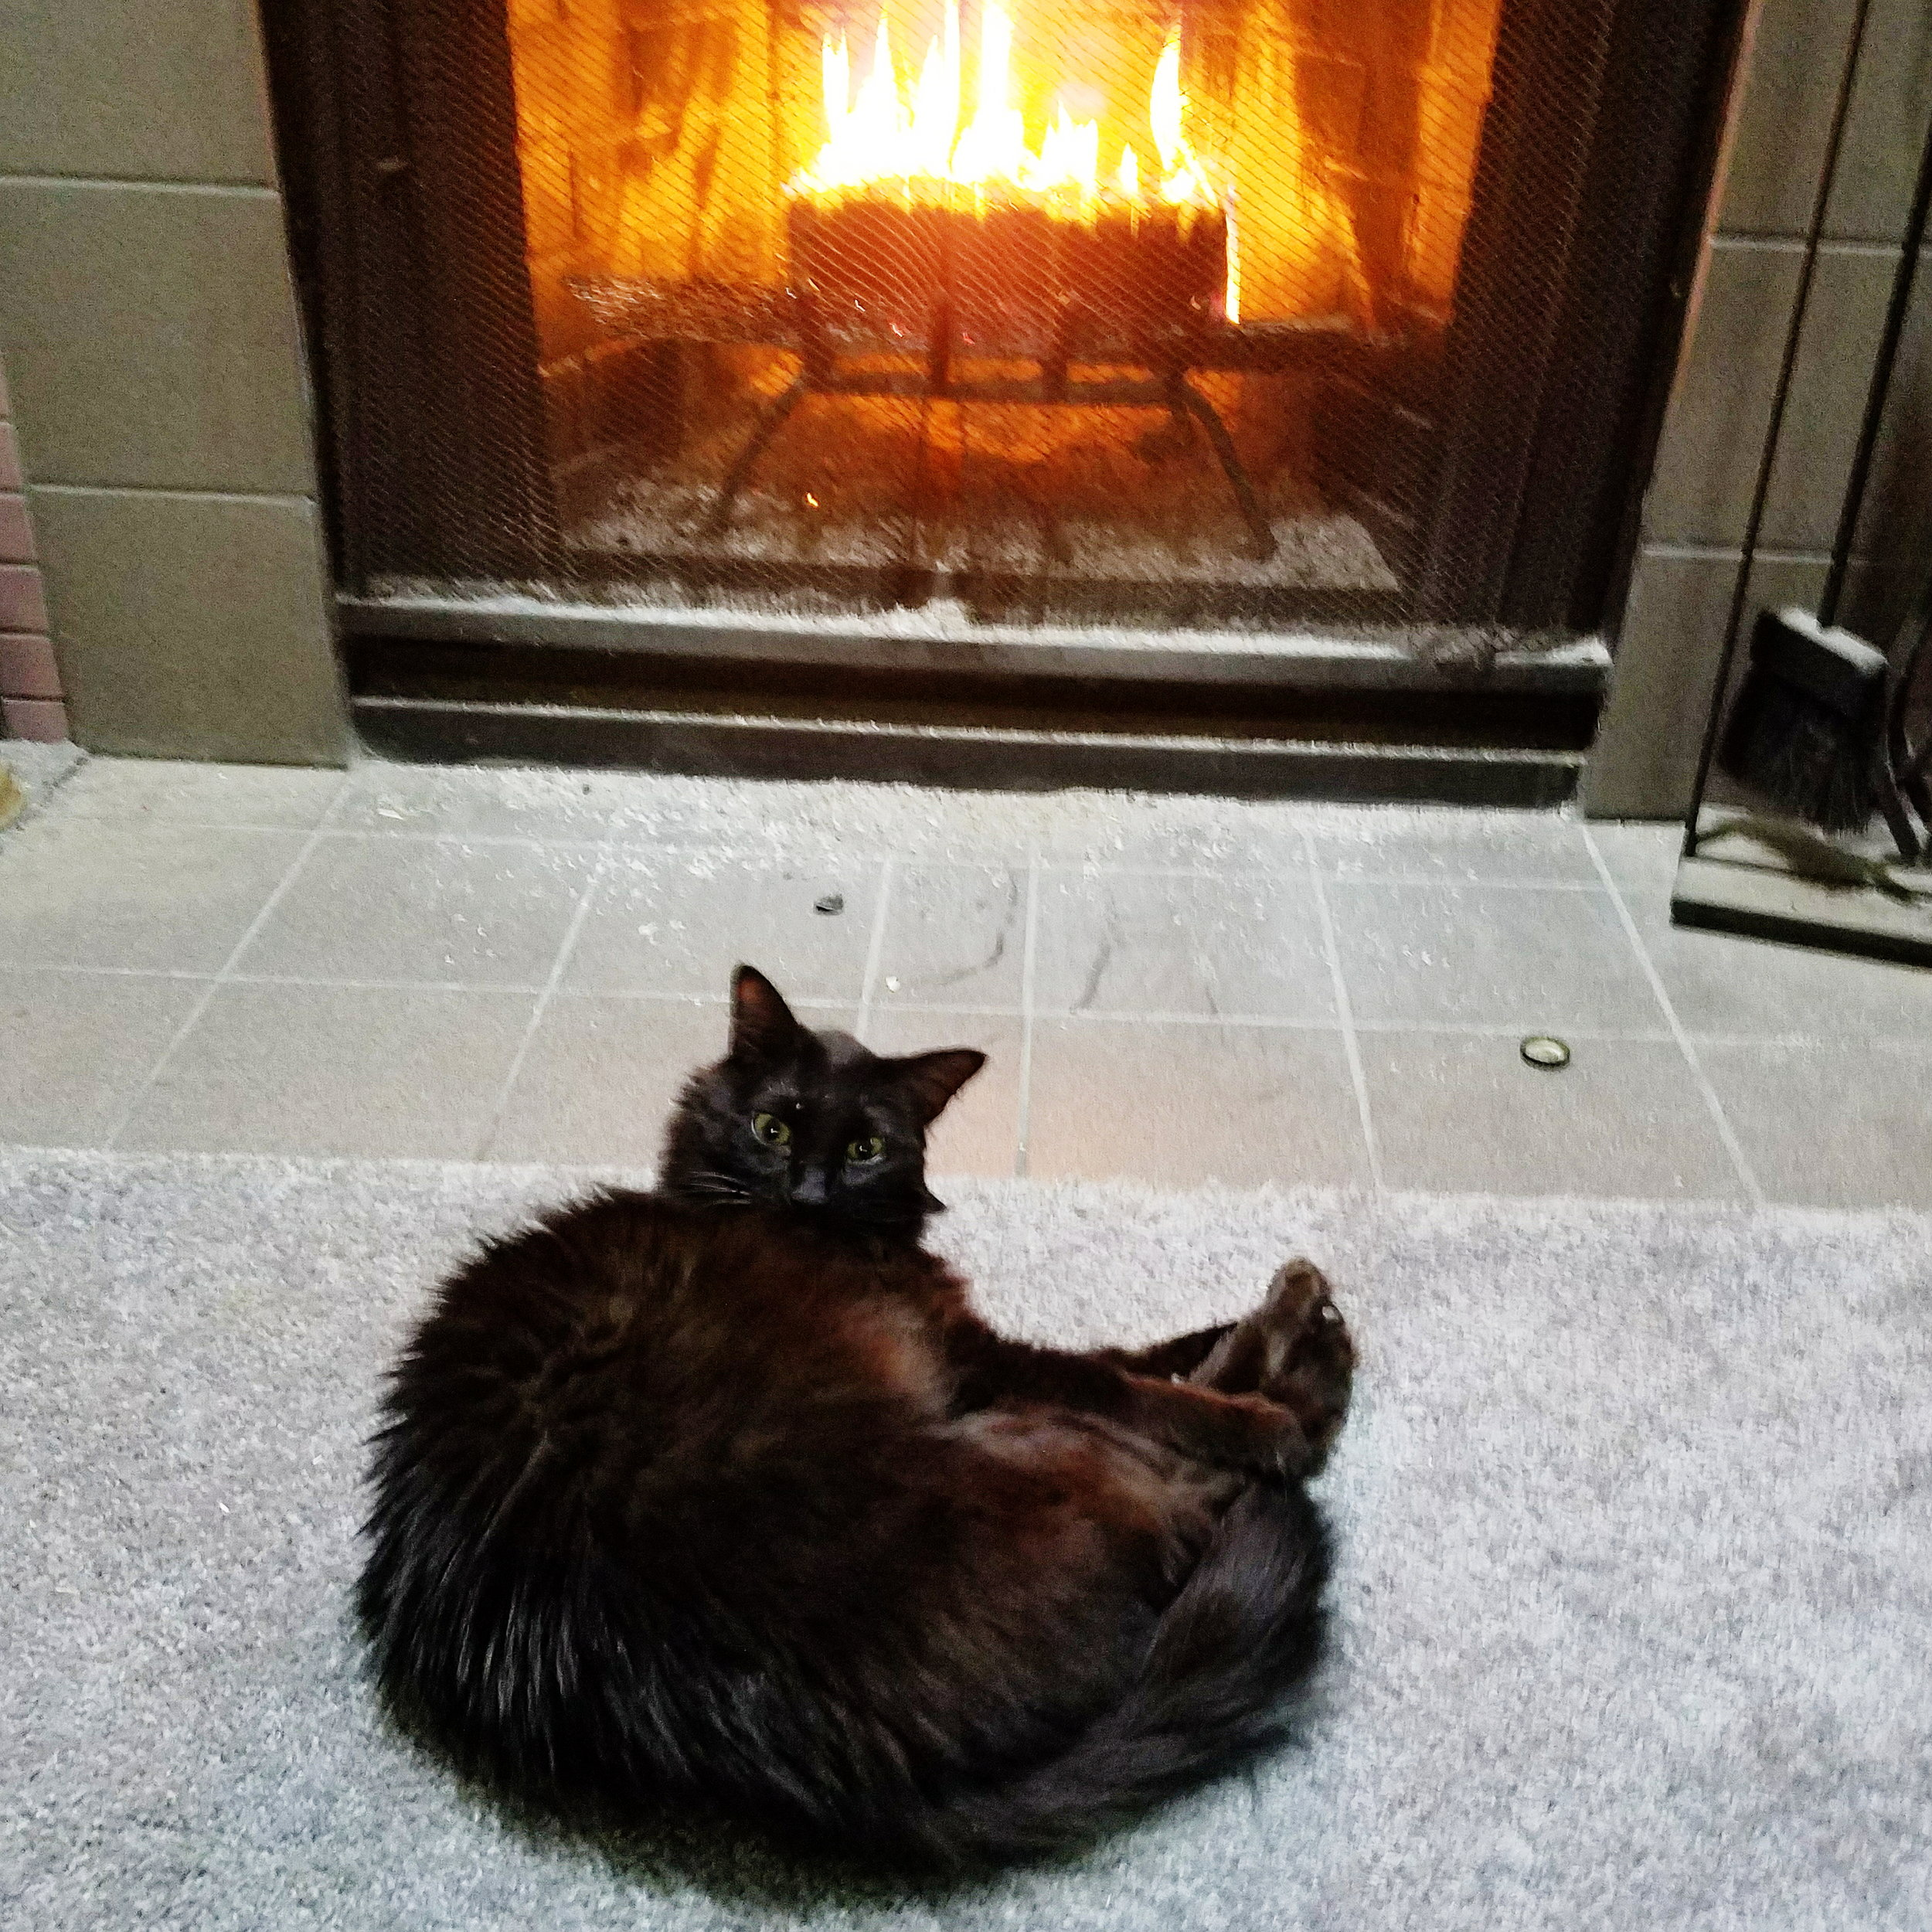 Getting dirty looks for oh-so-rudely interrupting his nap in front of the fire